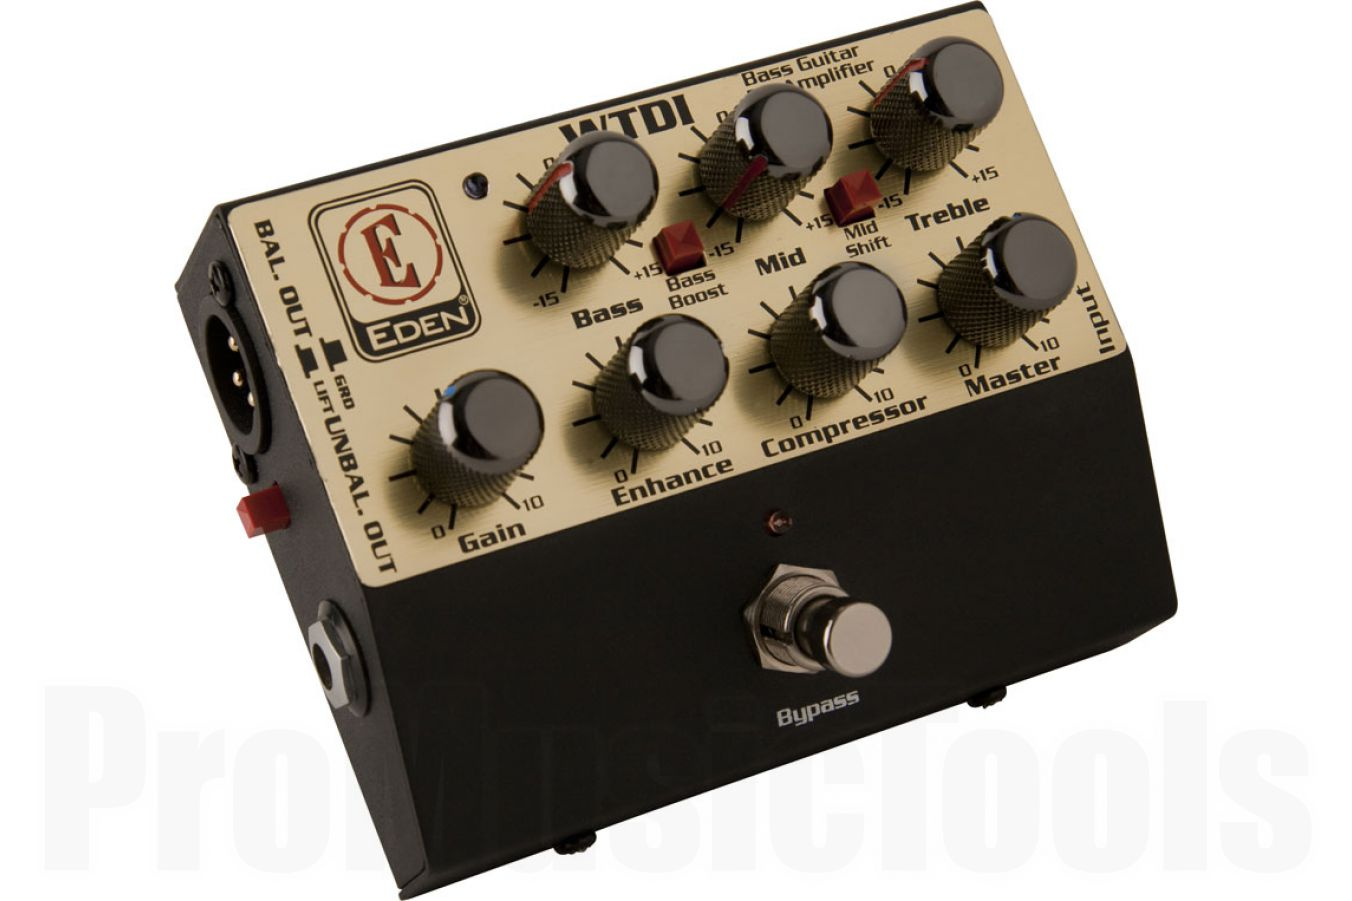 Eden WTDI bass D.I. box & preamp - B-stock (1x opened box)